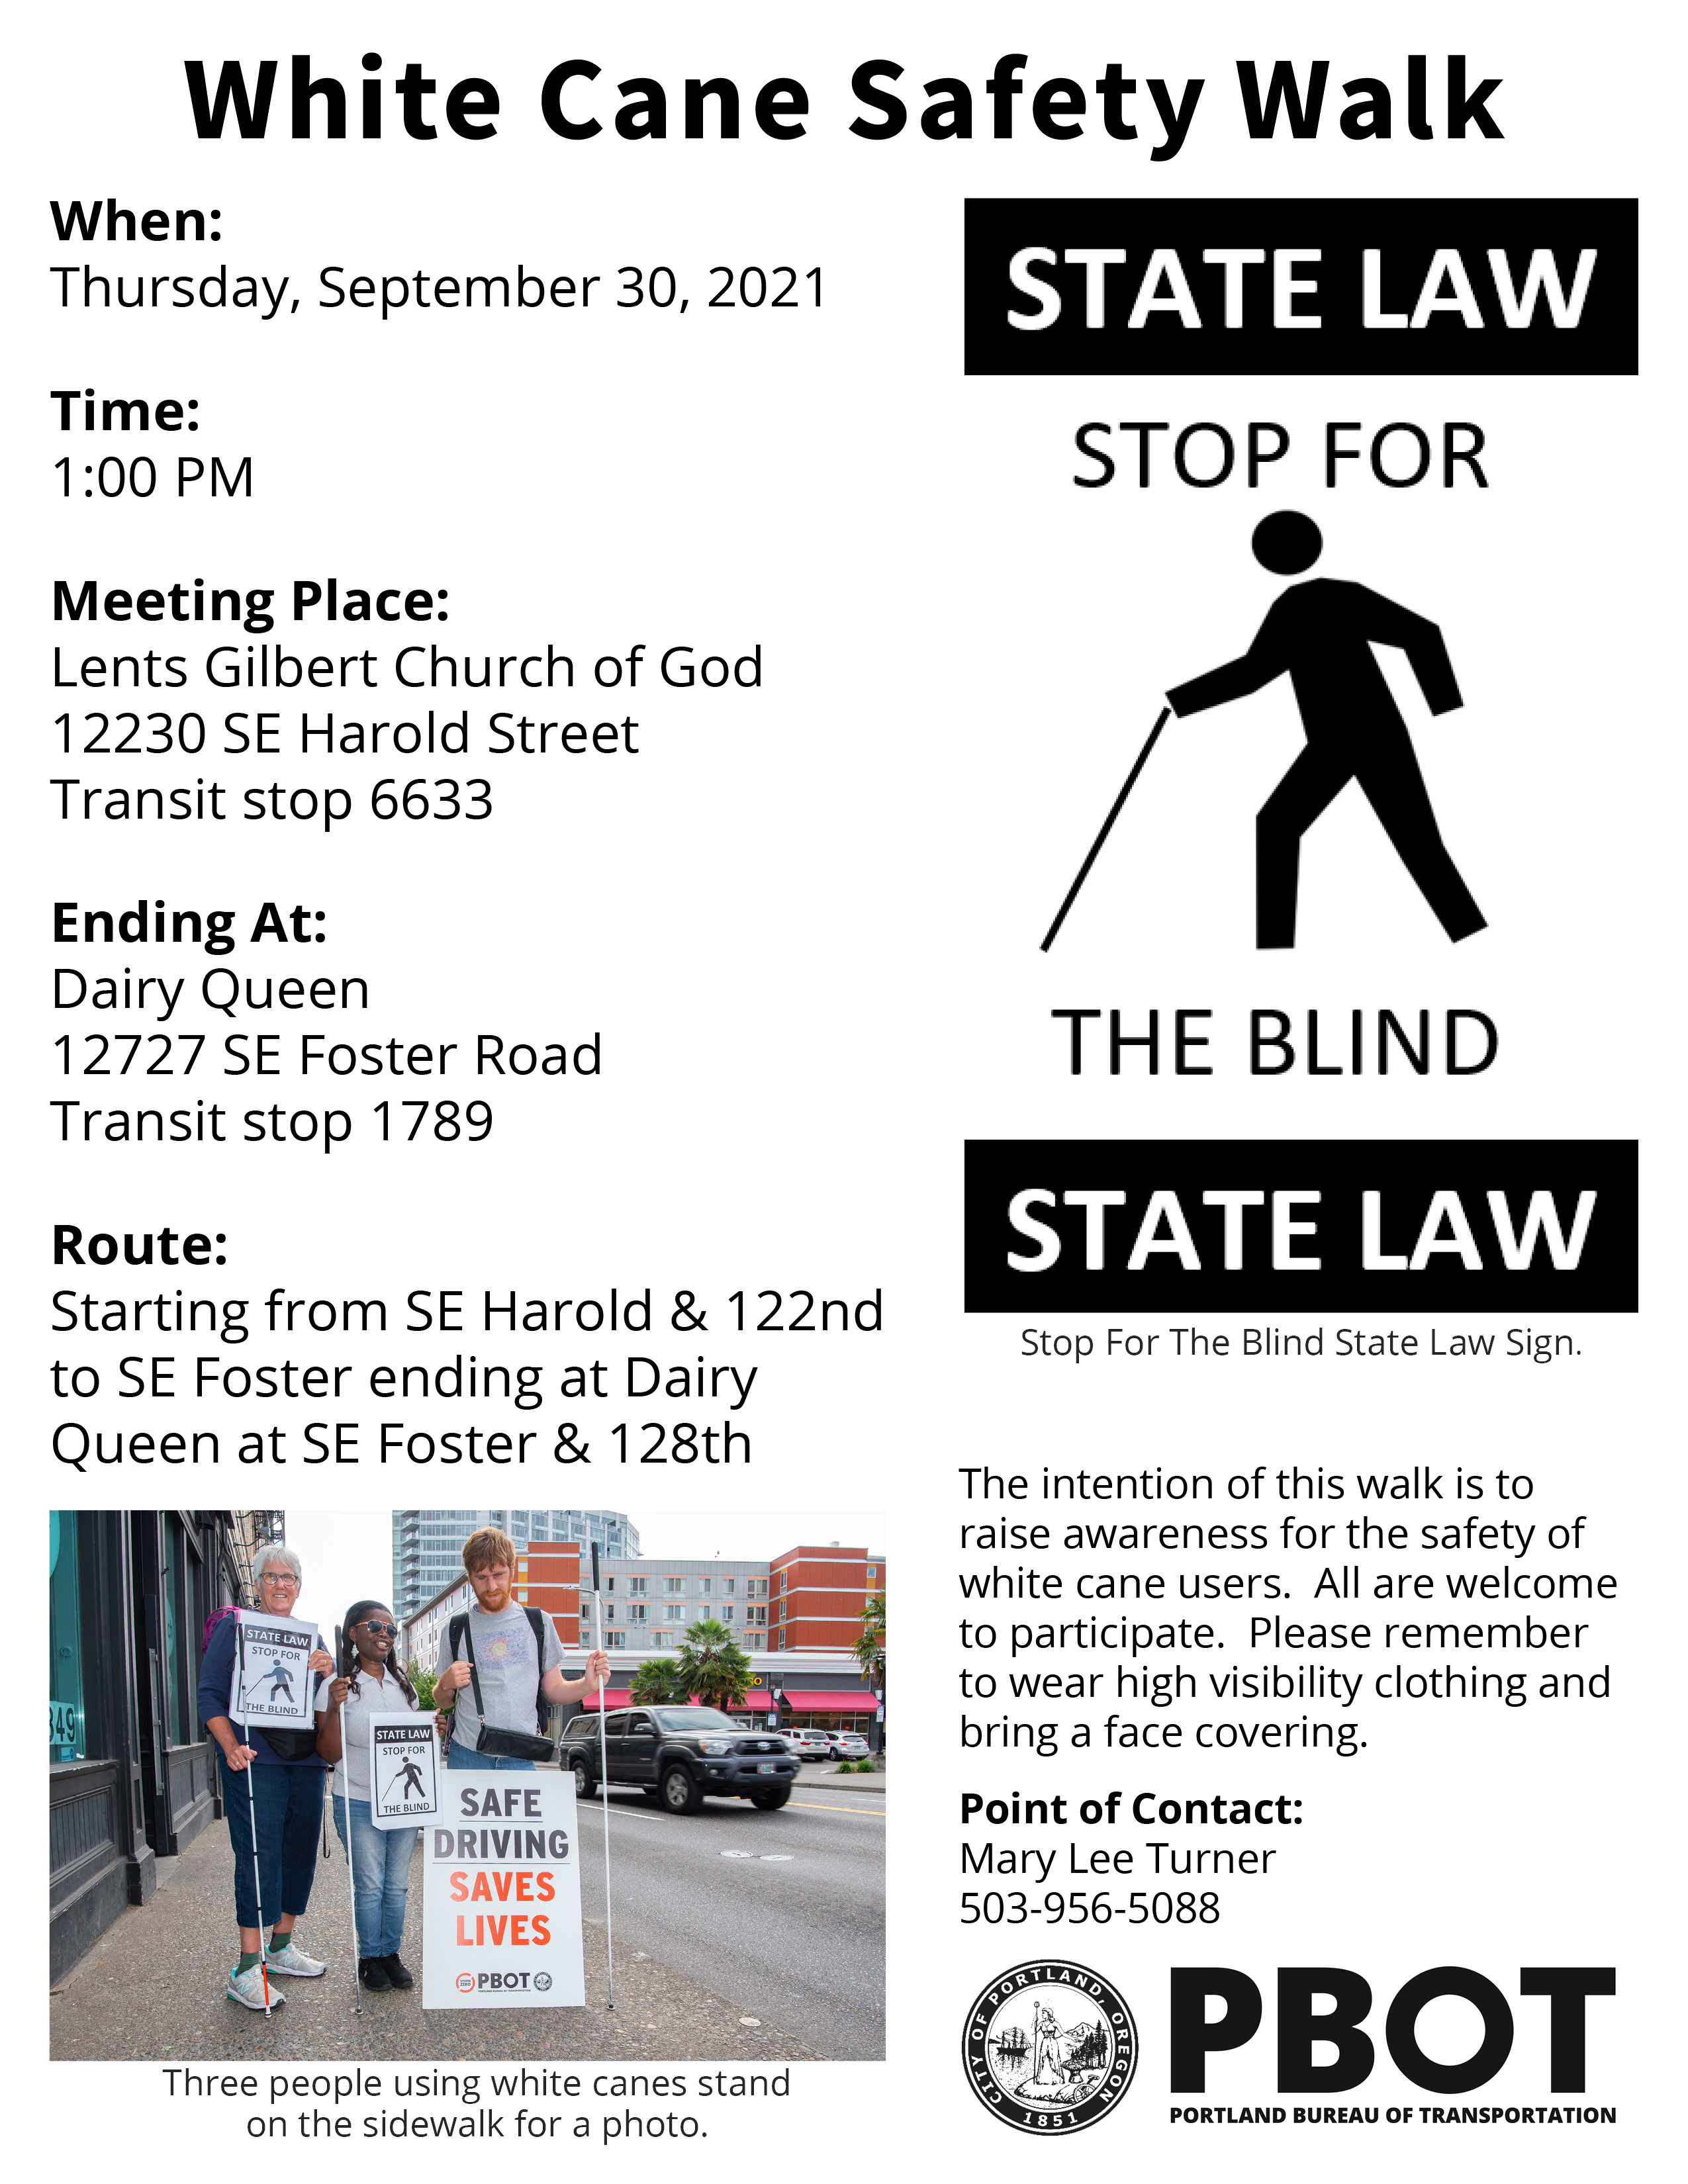 Image 1: Stop for the blind state law sign. Image 2: Three people using white canes stand on the sidewalk for a photo.